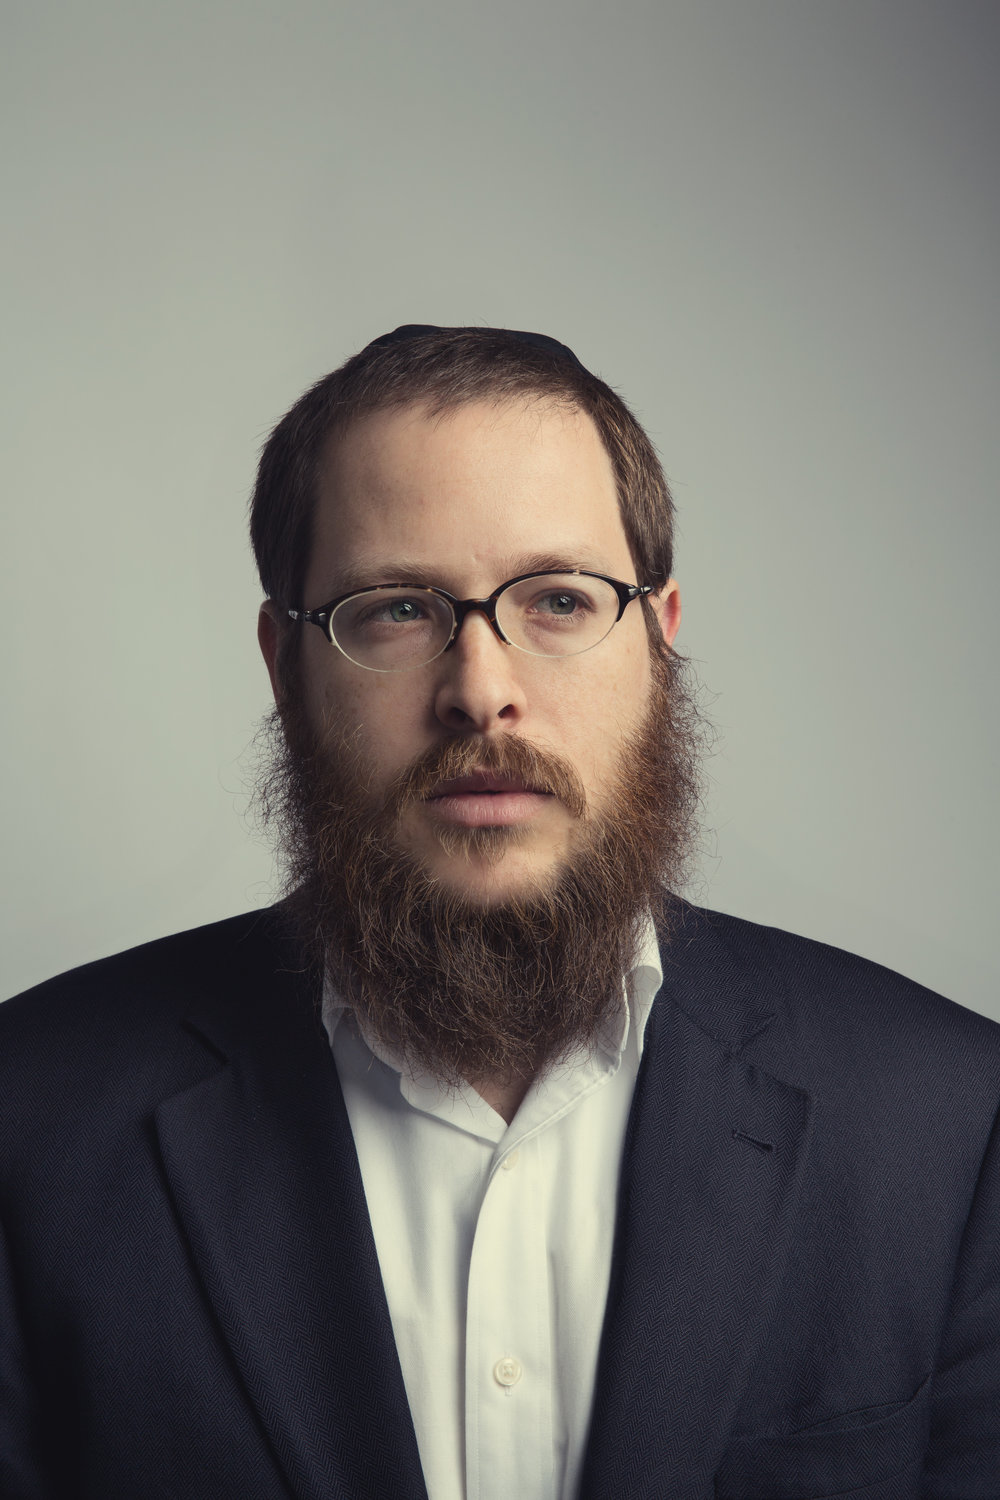 Rabbi Yudi Steiner